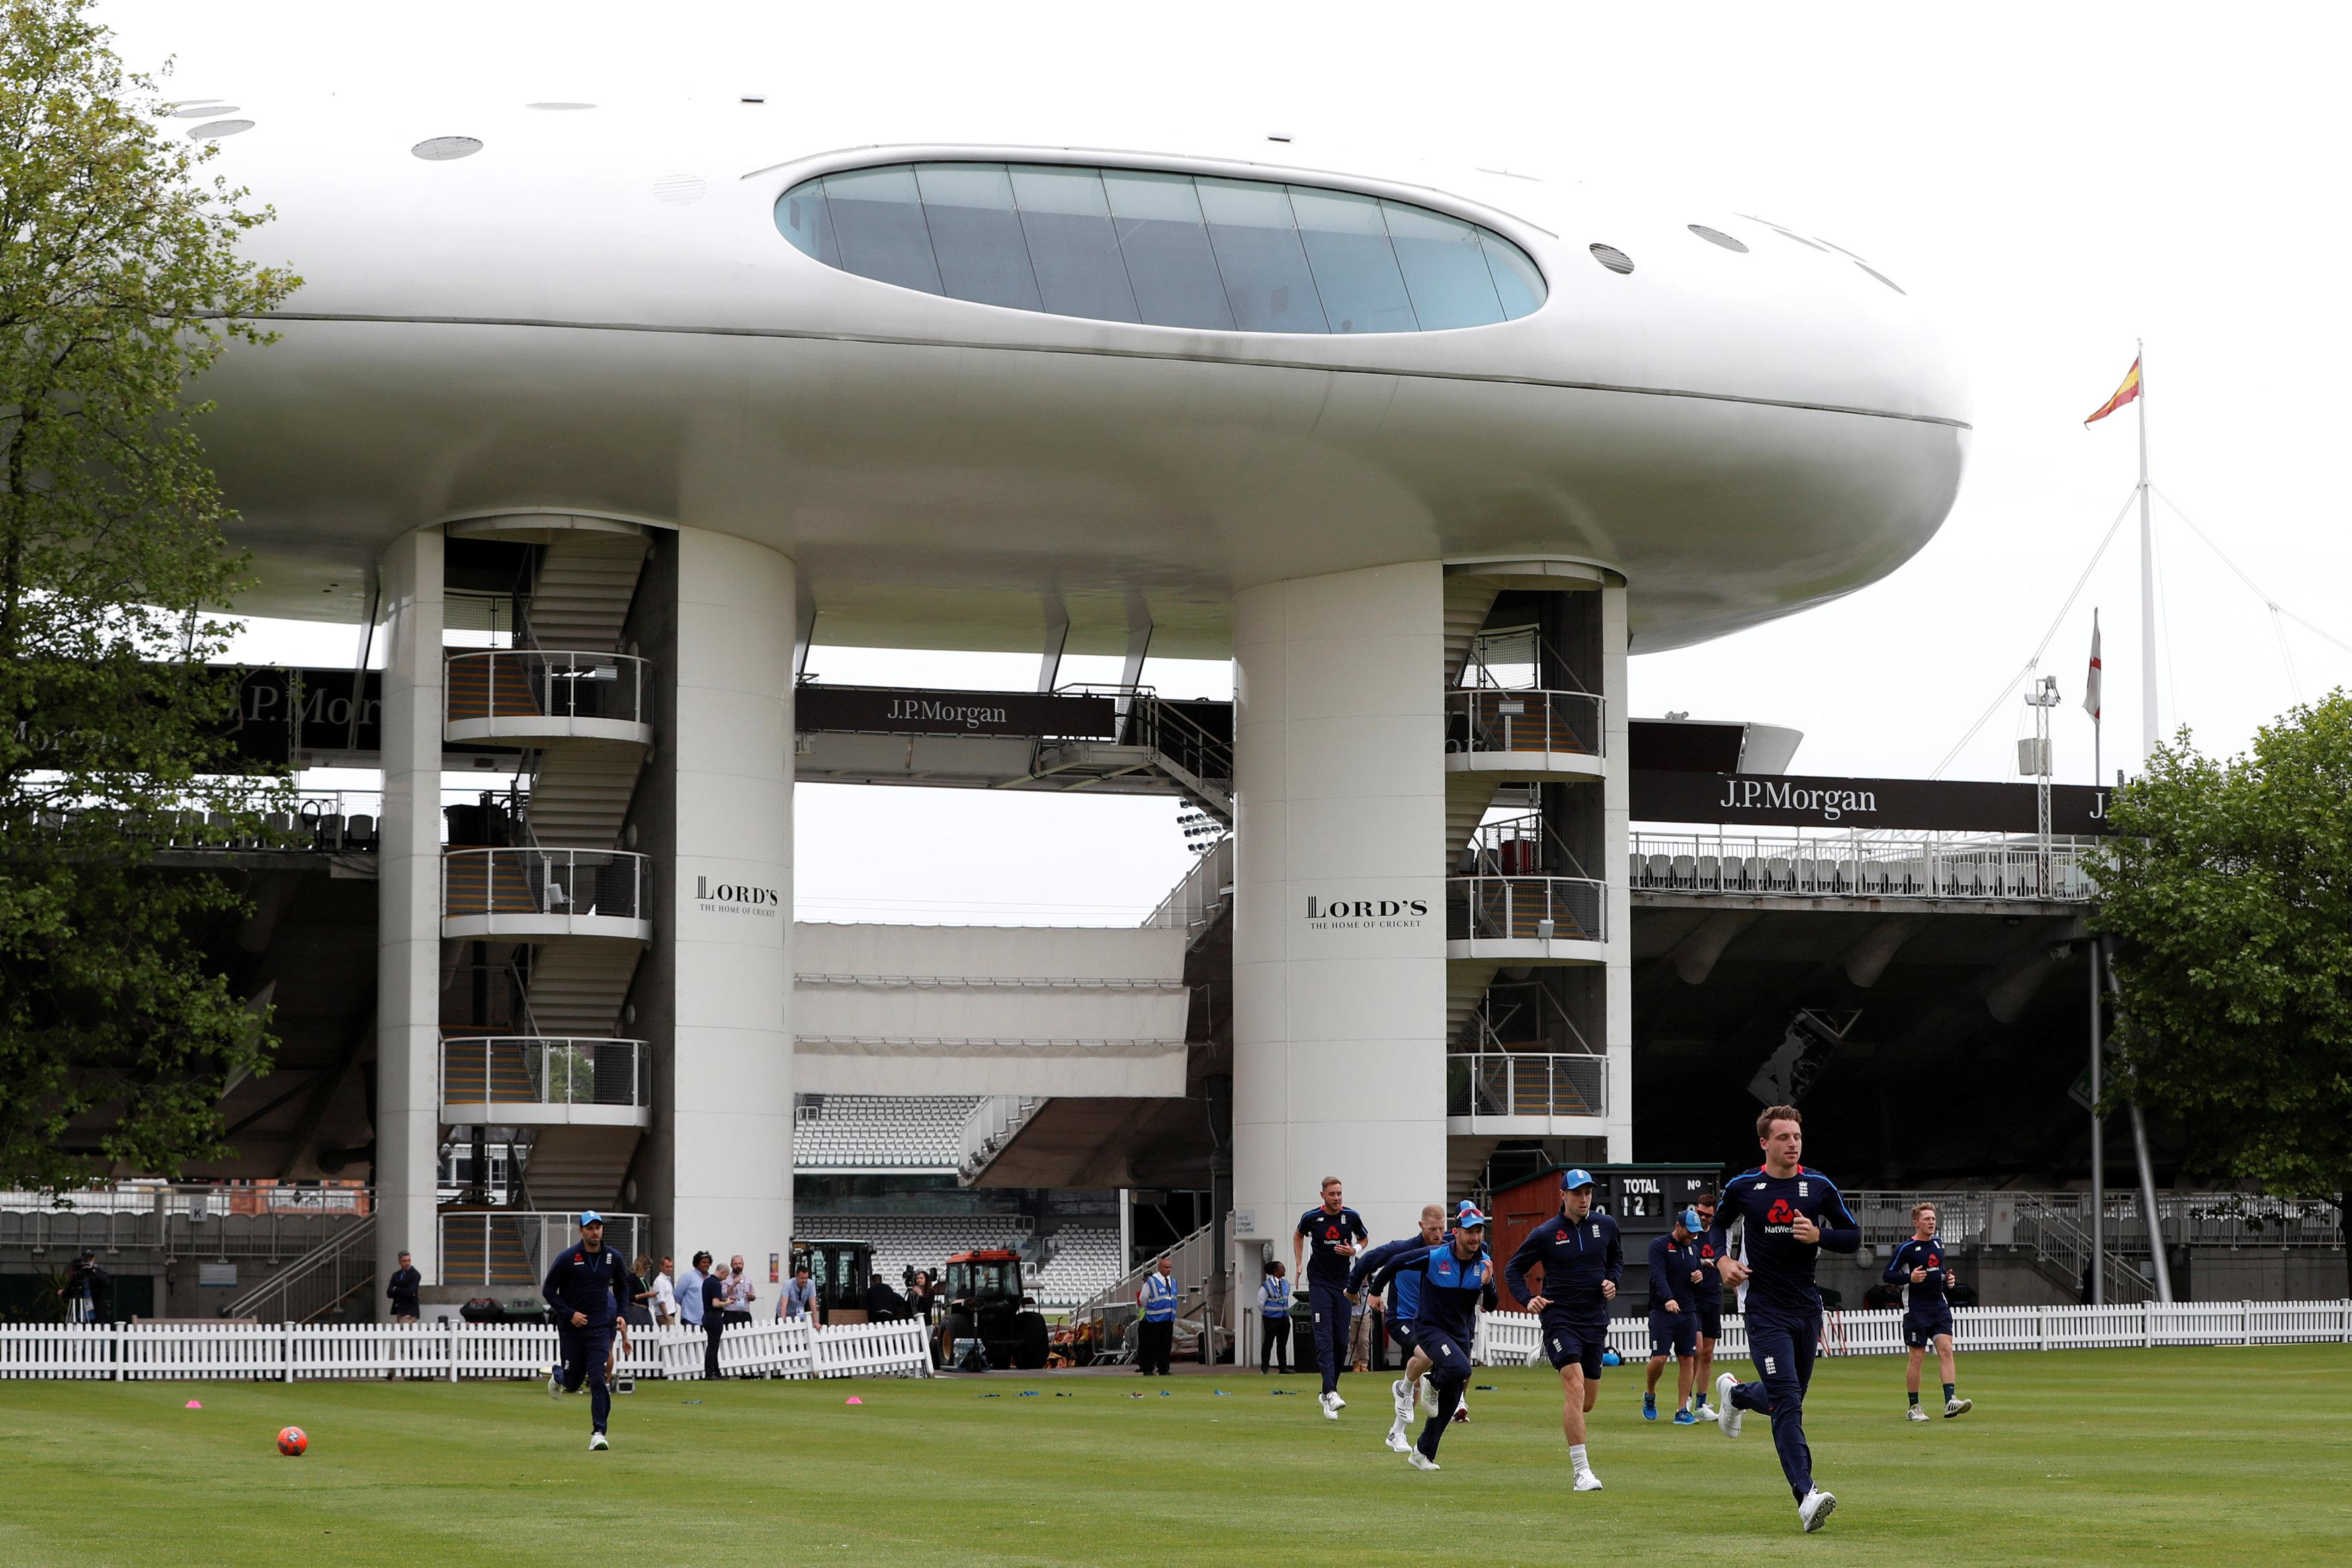 England prepare for the first Test of the summer against Pakistan at Lord's